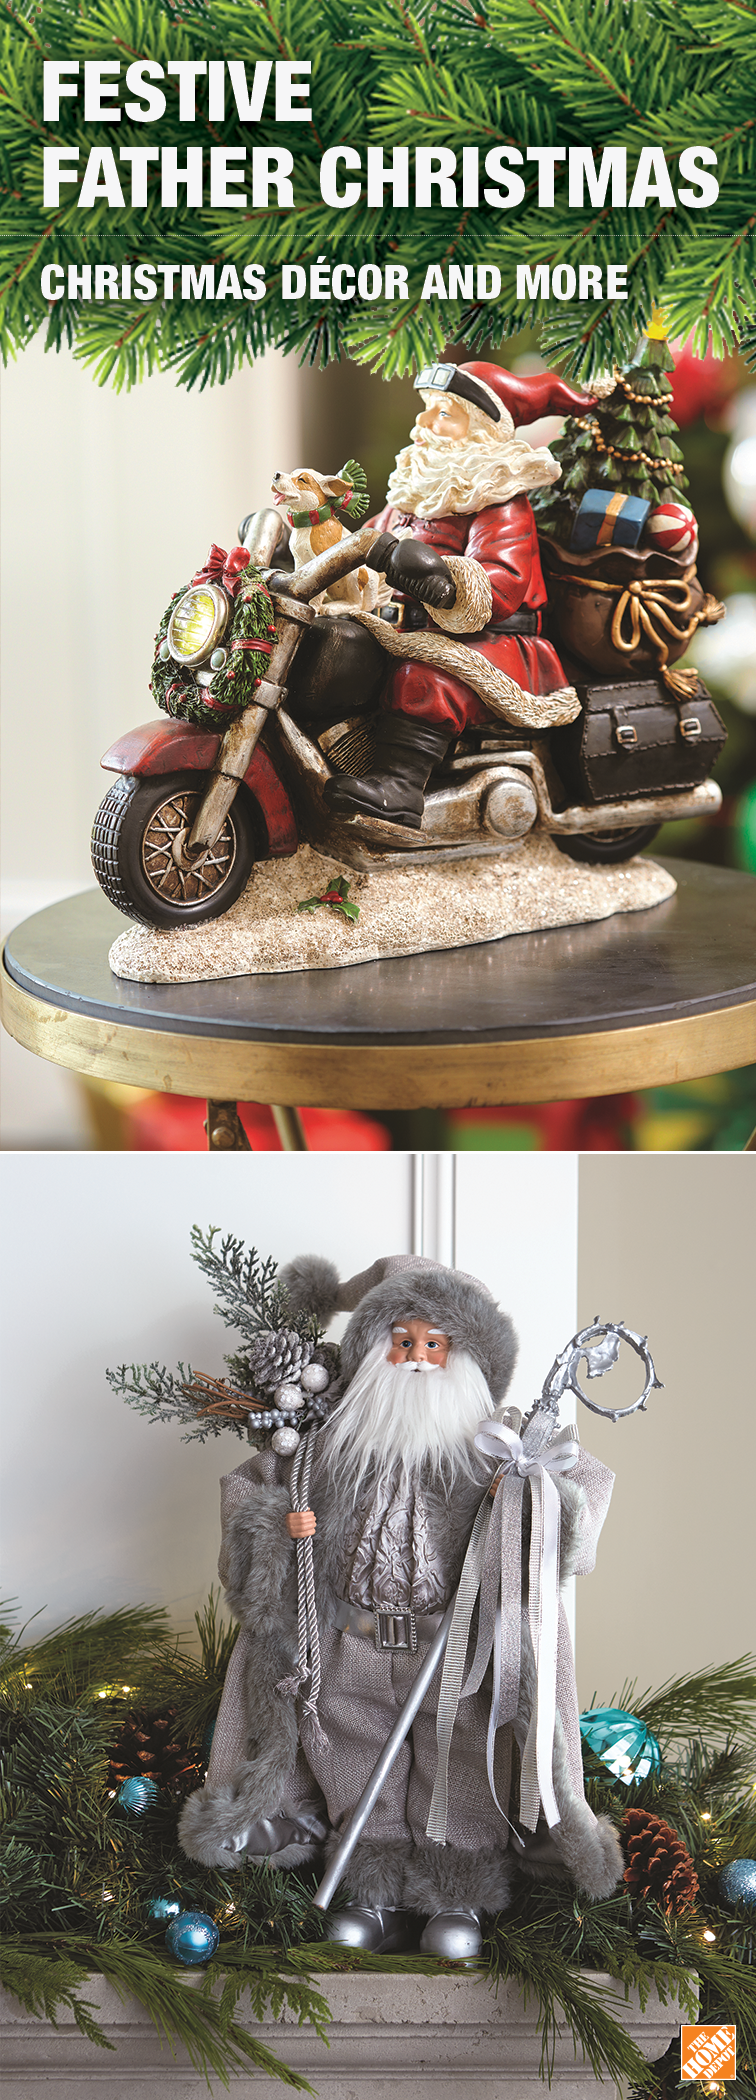 He's coming to town! Bring home a Saint Nick statuette and make your holiday merrier.